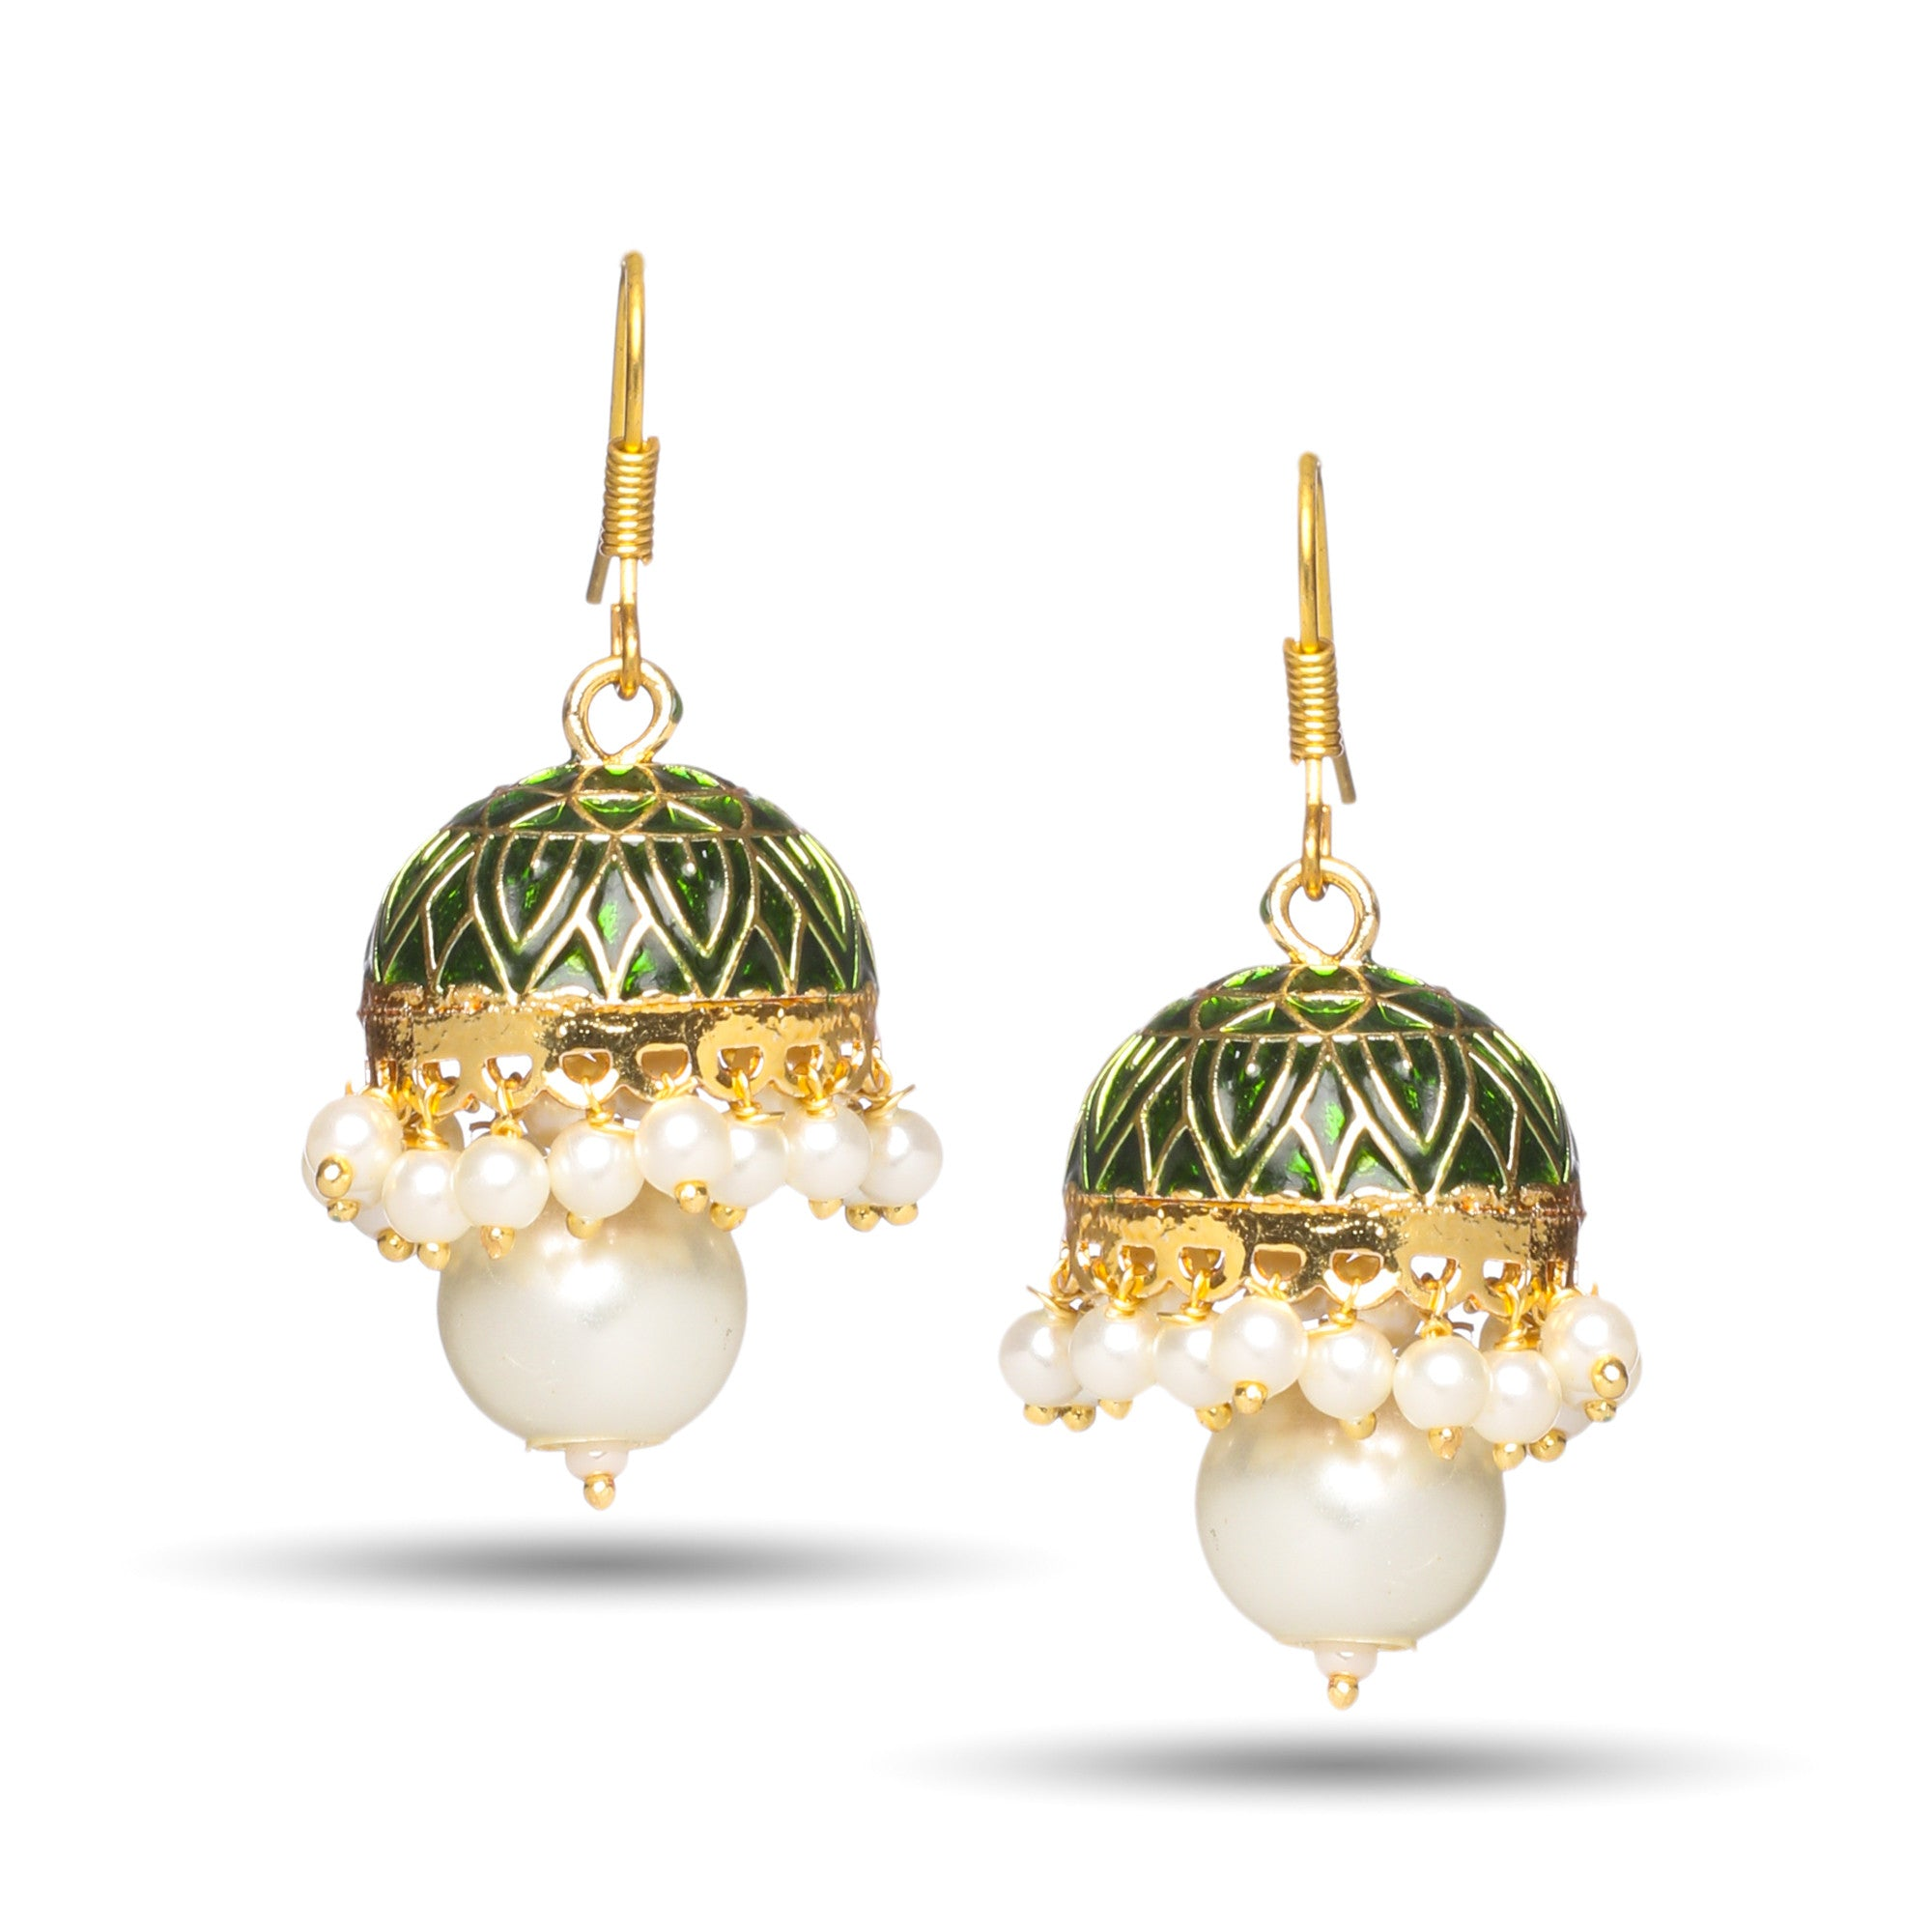 Rajasthani Meenakari wih Pearl Jhumka Earrings